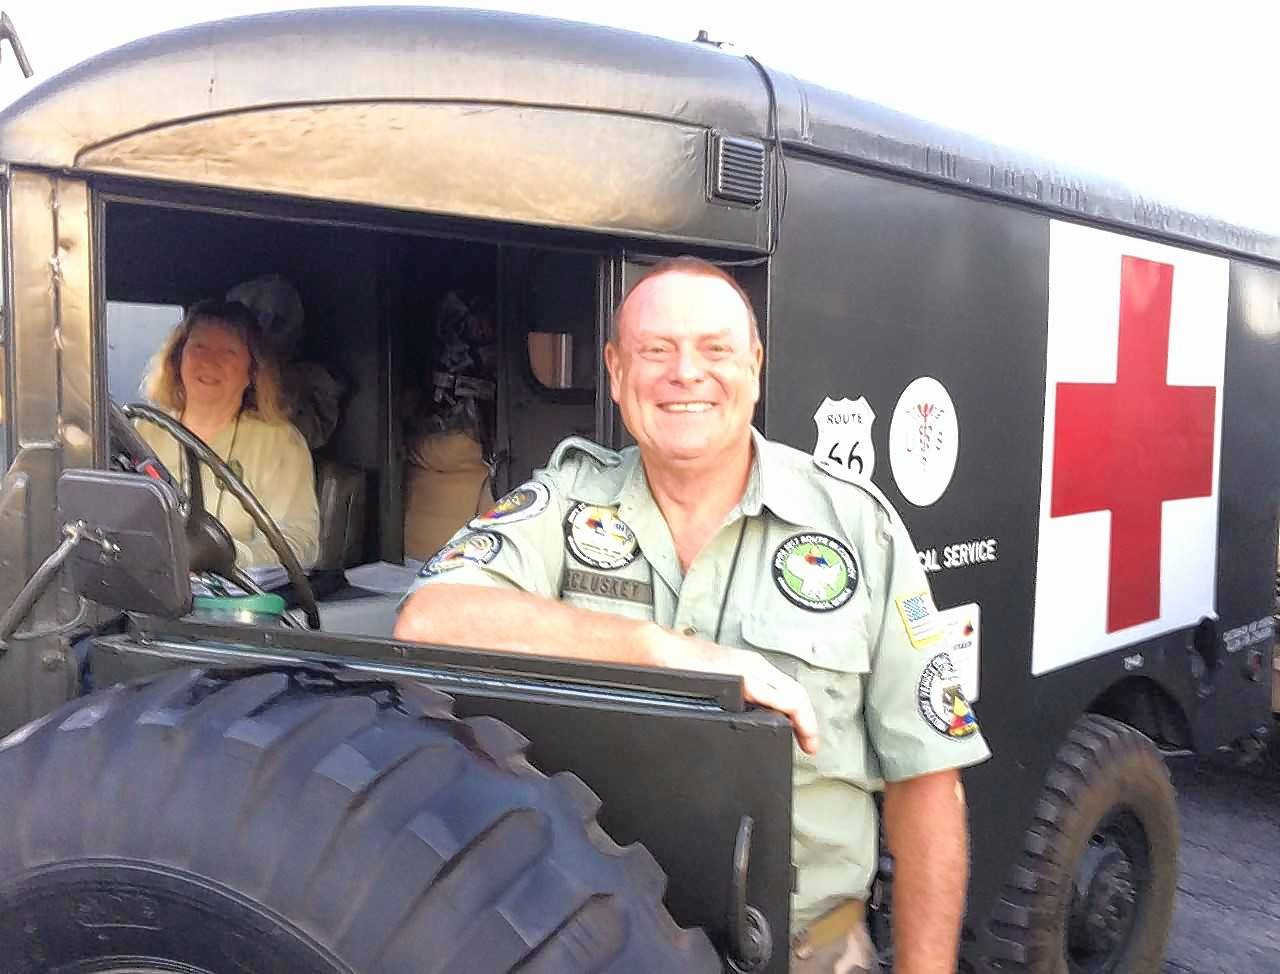 Leading a cross-country convoy of 60 antique military vehicles along U.S. Route 66, Dan and Janine McCluskey of the Military Vehicle Preservation Association keep the pace under 35 mph in their 1964 Dodge M43 ambulance. If it's hot, they pop open the windshield glass.